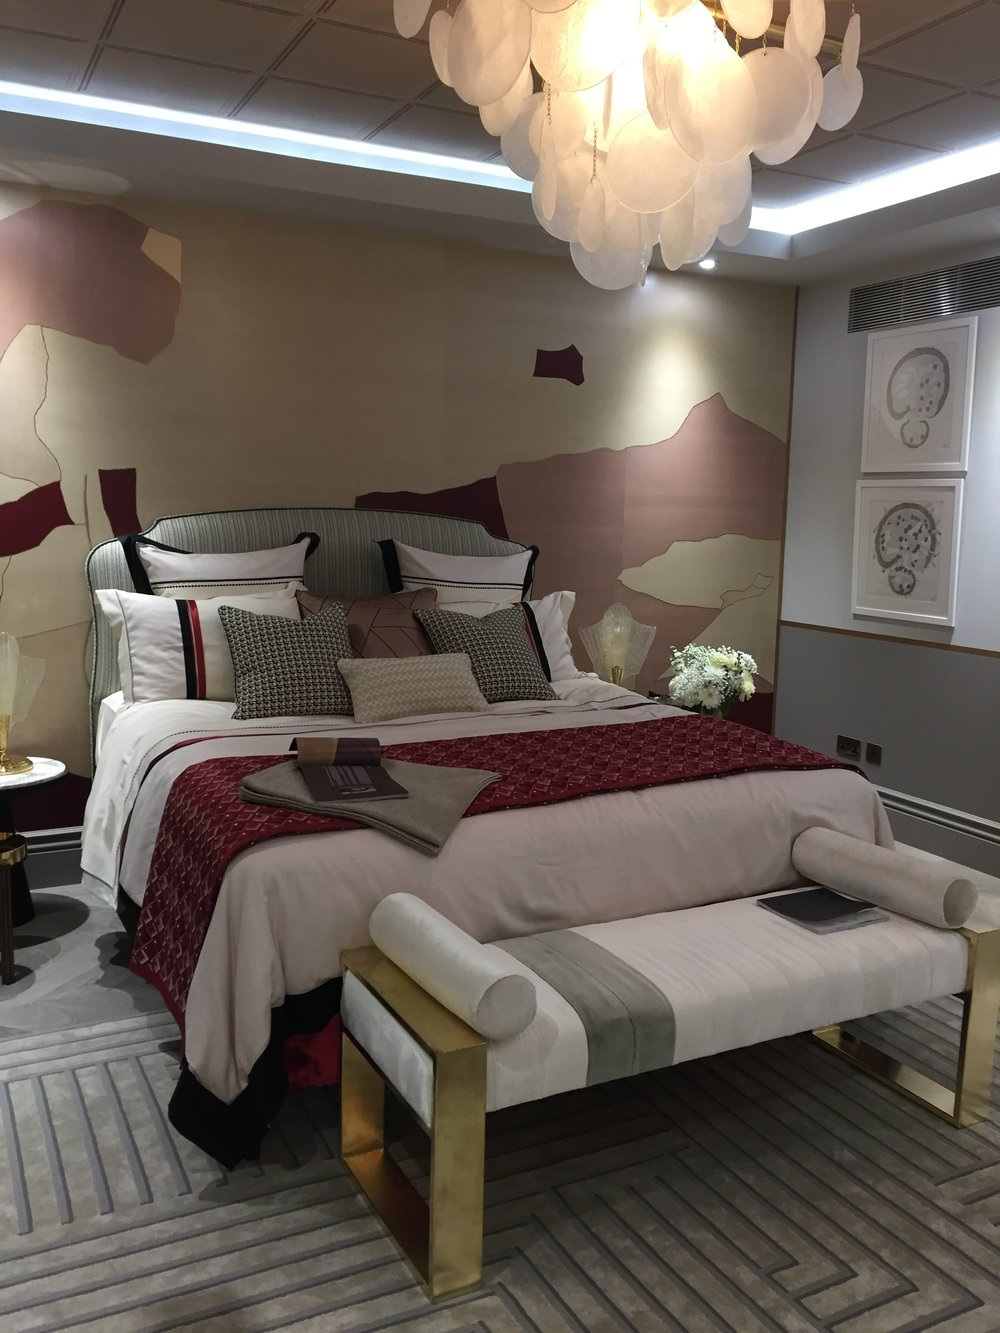 Holiday House London, An Interior Design Event With A Cause - Shalini Misra Marooned in Marocco Bedroom.JPG